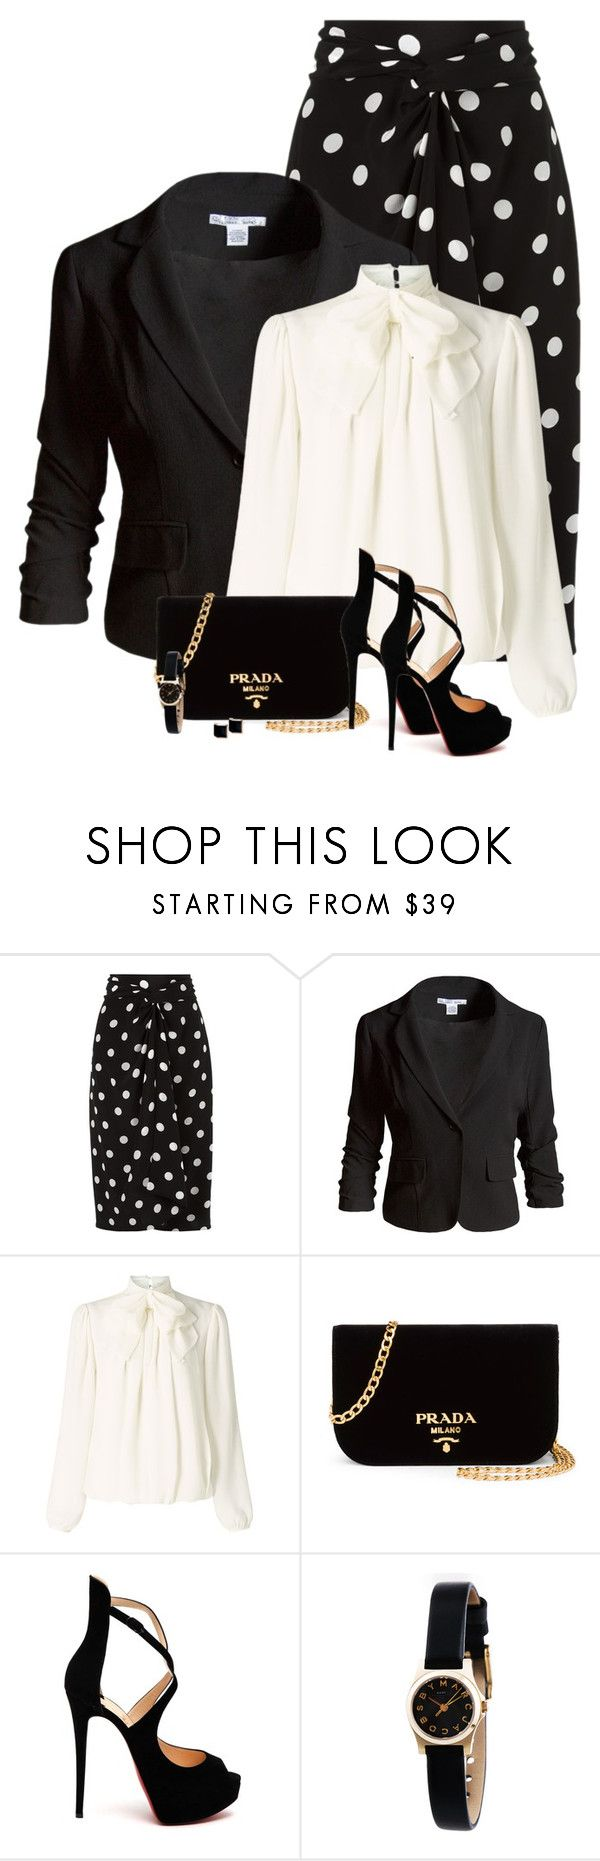 """Black & White"" by barbarapoole ❤ liked on Polyvore featuring Andrea Marques, Sans Souci, Somerset by Alice Temperley, Prada, Christian Louboutin, Marc by Marc Jacobs and Kattri"